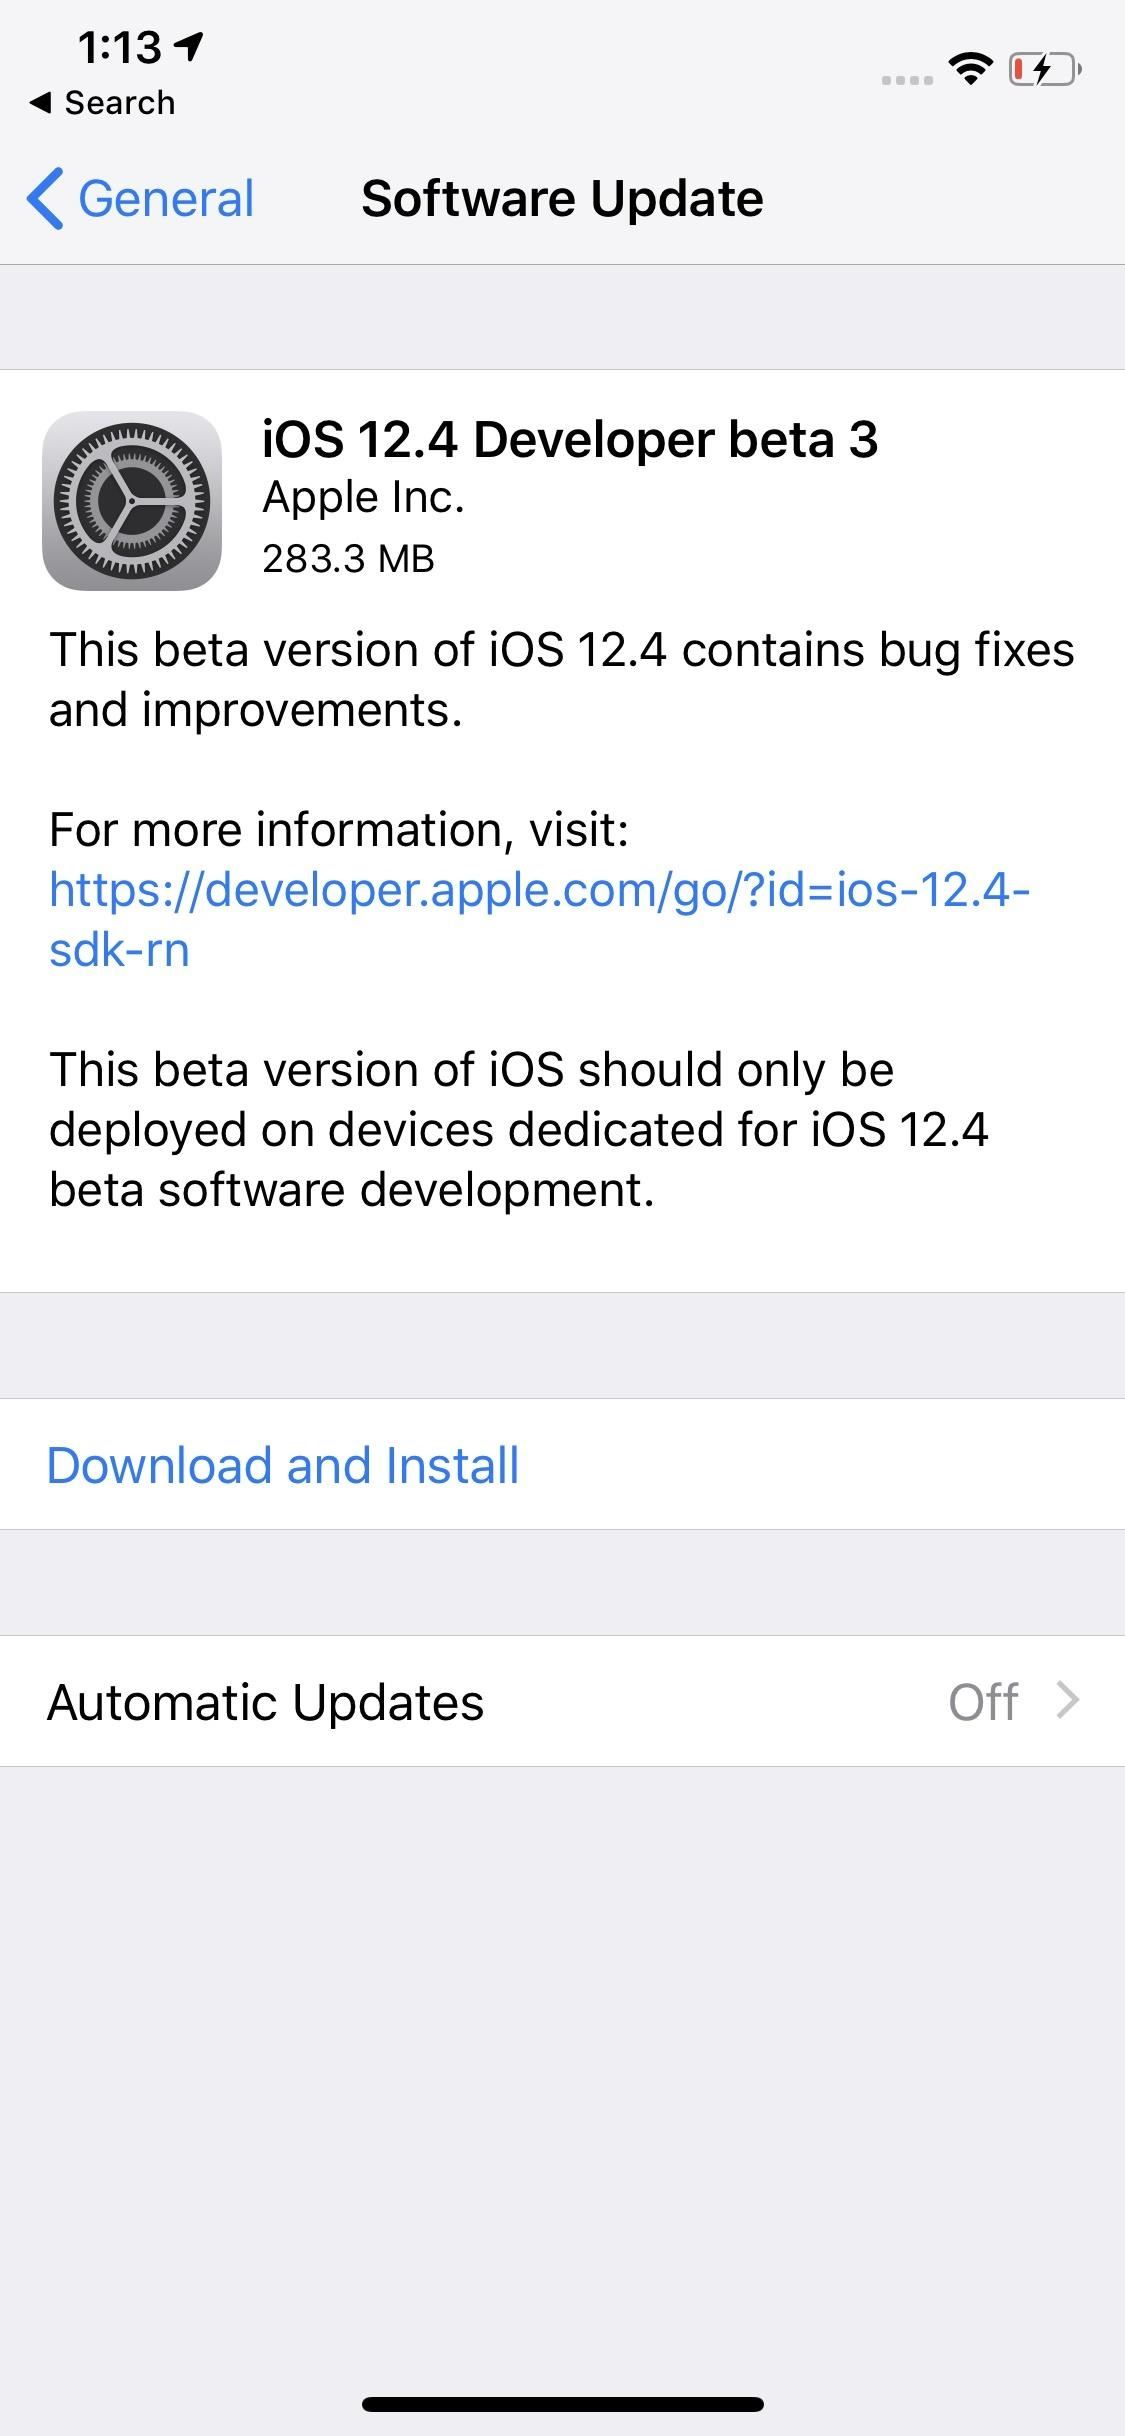 Apple Seeds iOS 12.4 Developer Beta 3 Today for iPhone